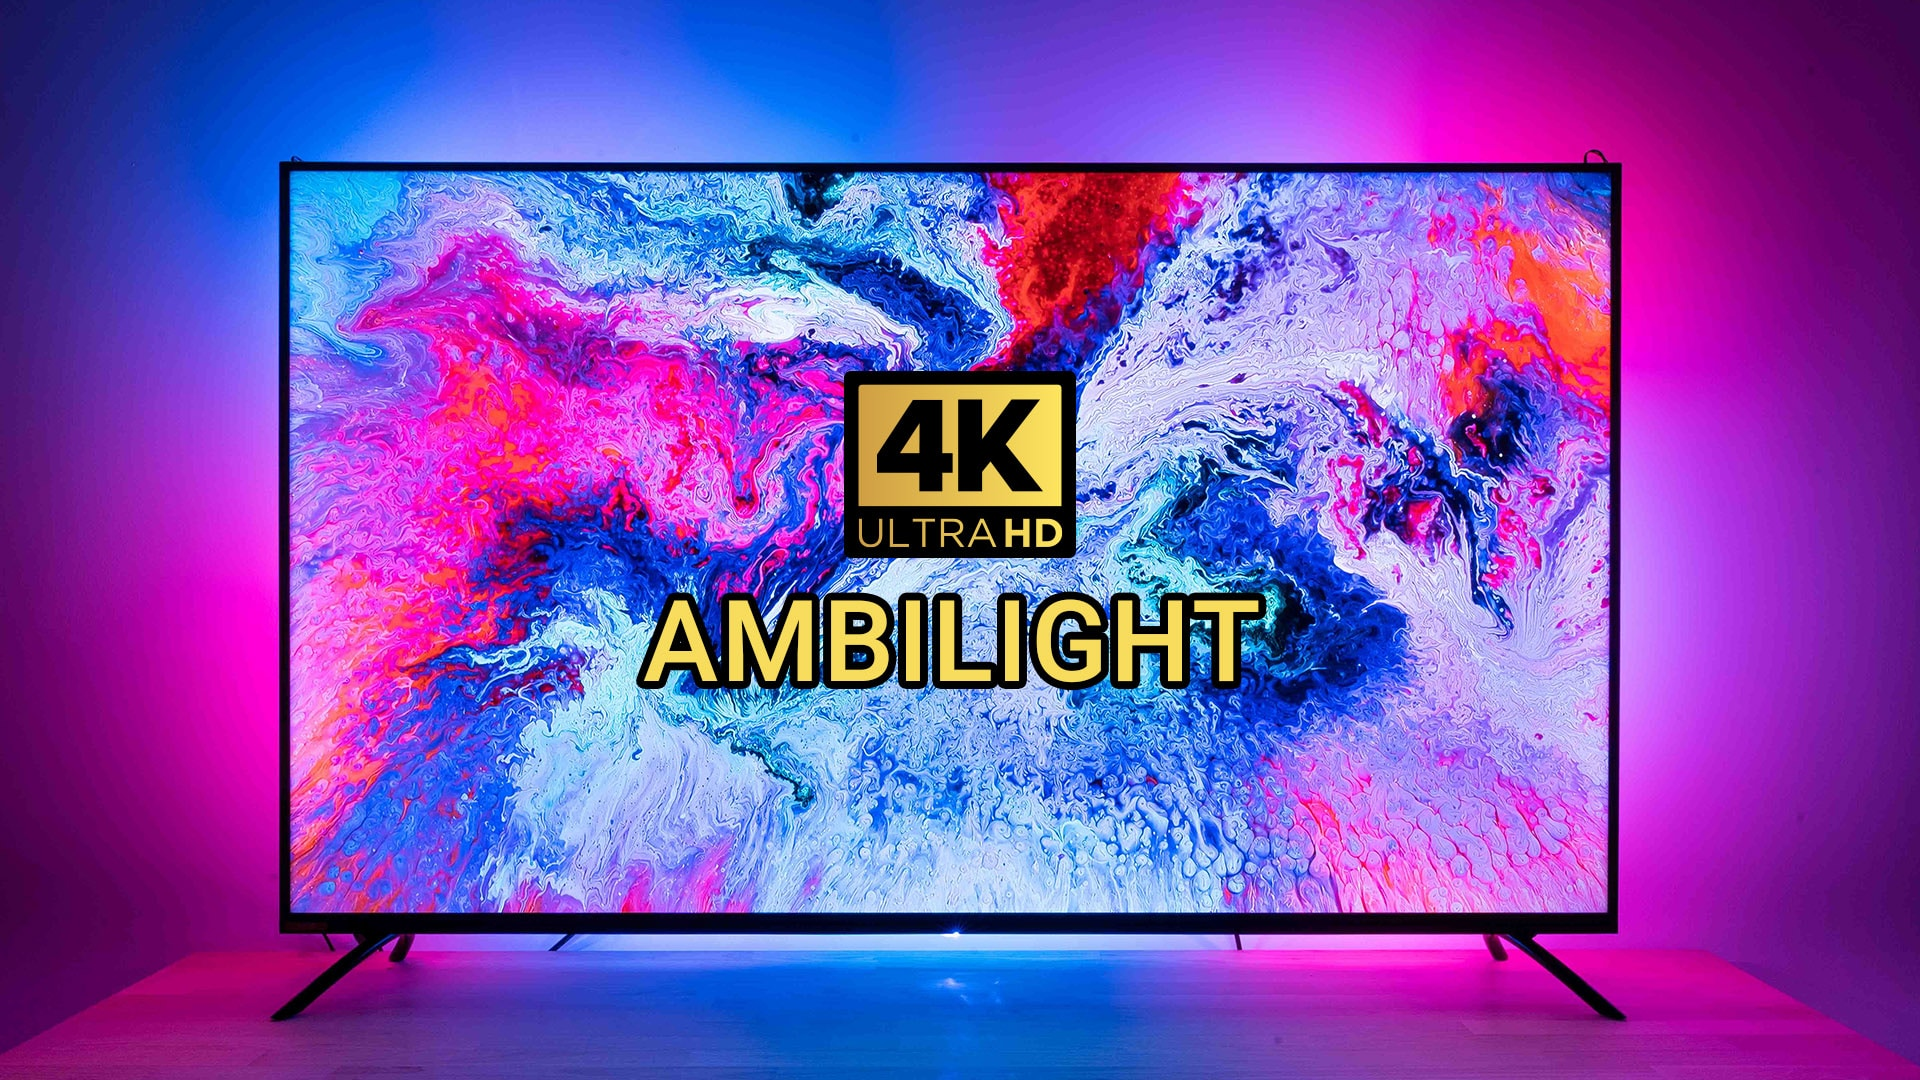 HDFury DIVA Ambilight - digitalewelt.at